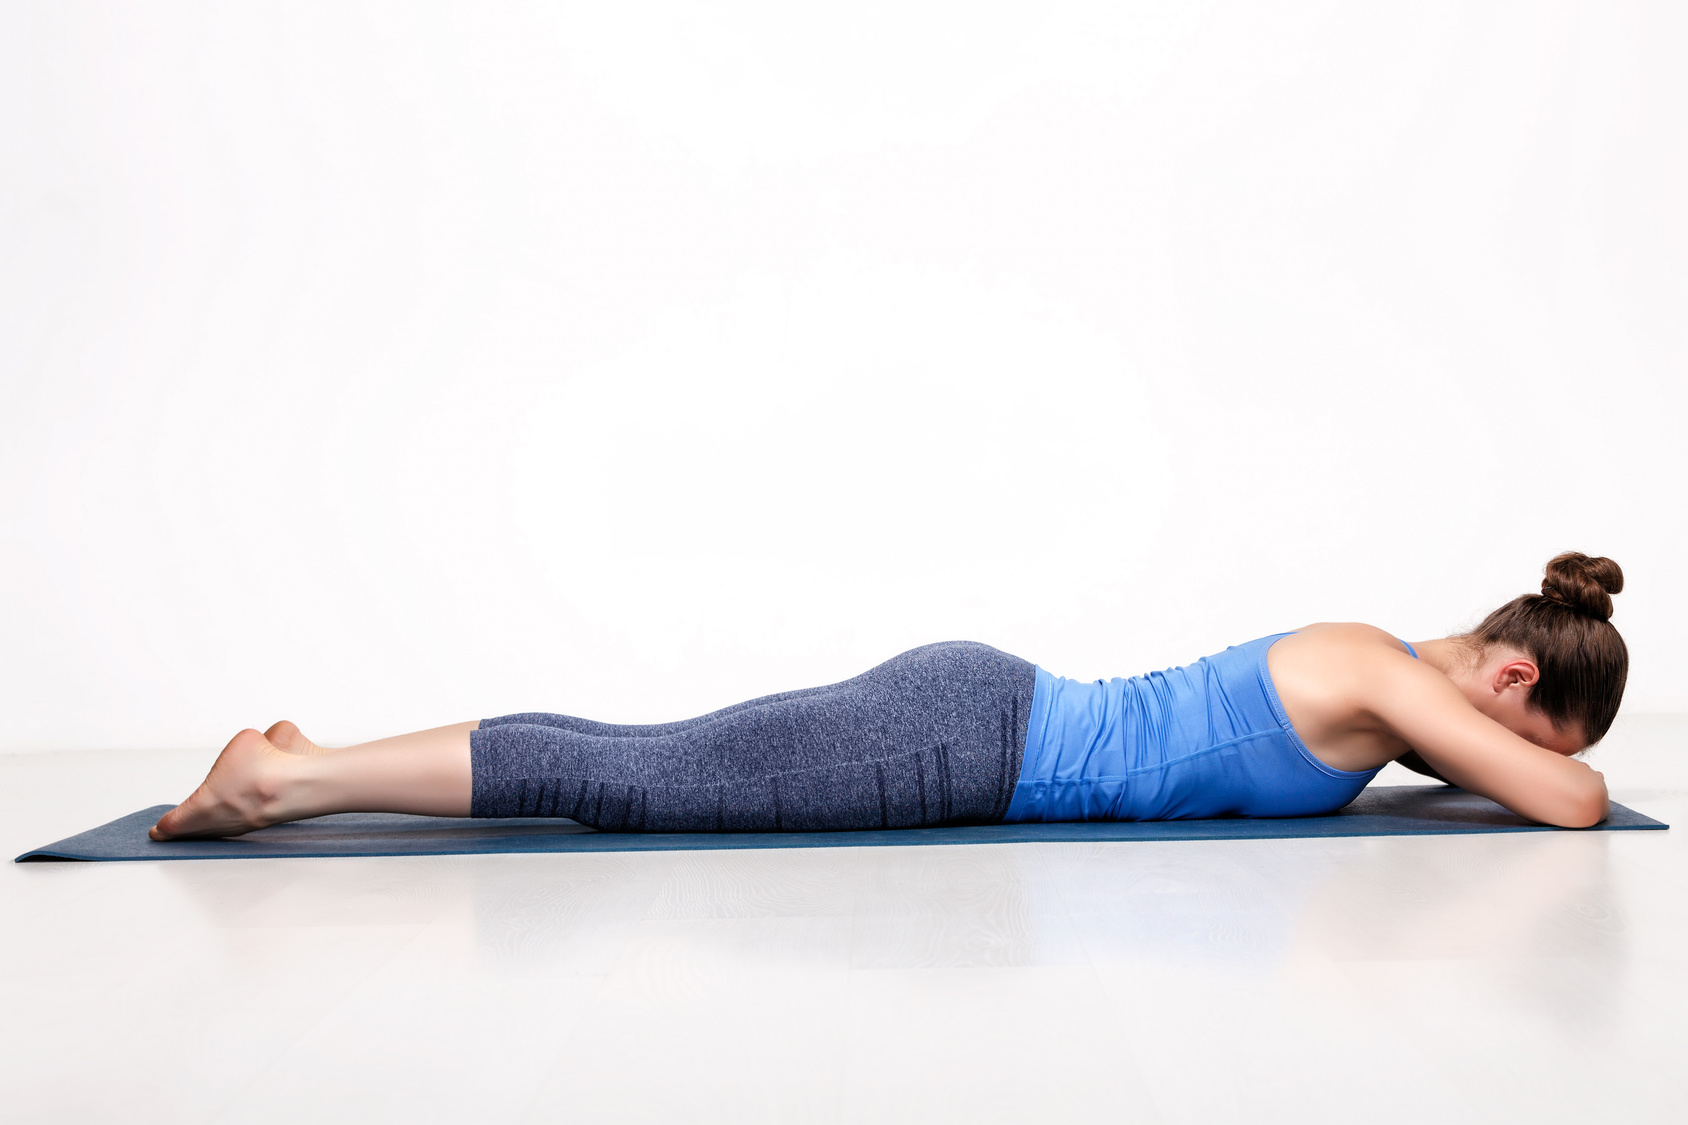 woman practicing shalabasana (locust pose) to strengthen the hip abductors